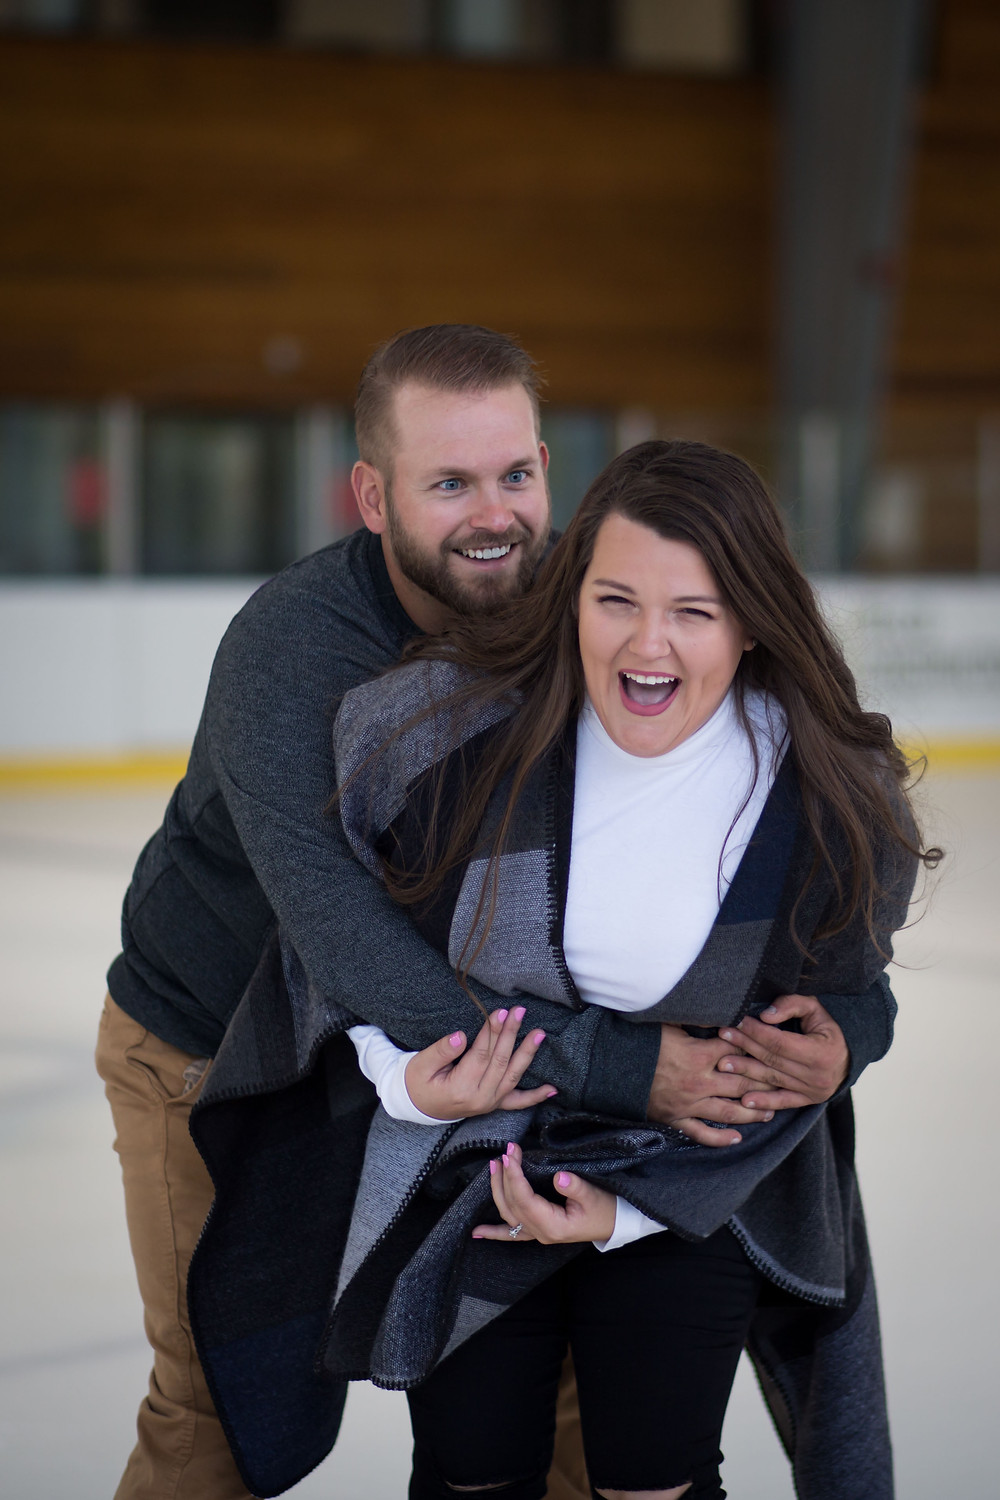 healthy zone east aurora ice rink couple skating engagement photo